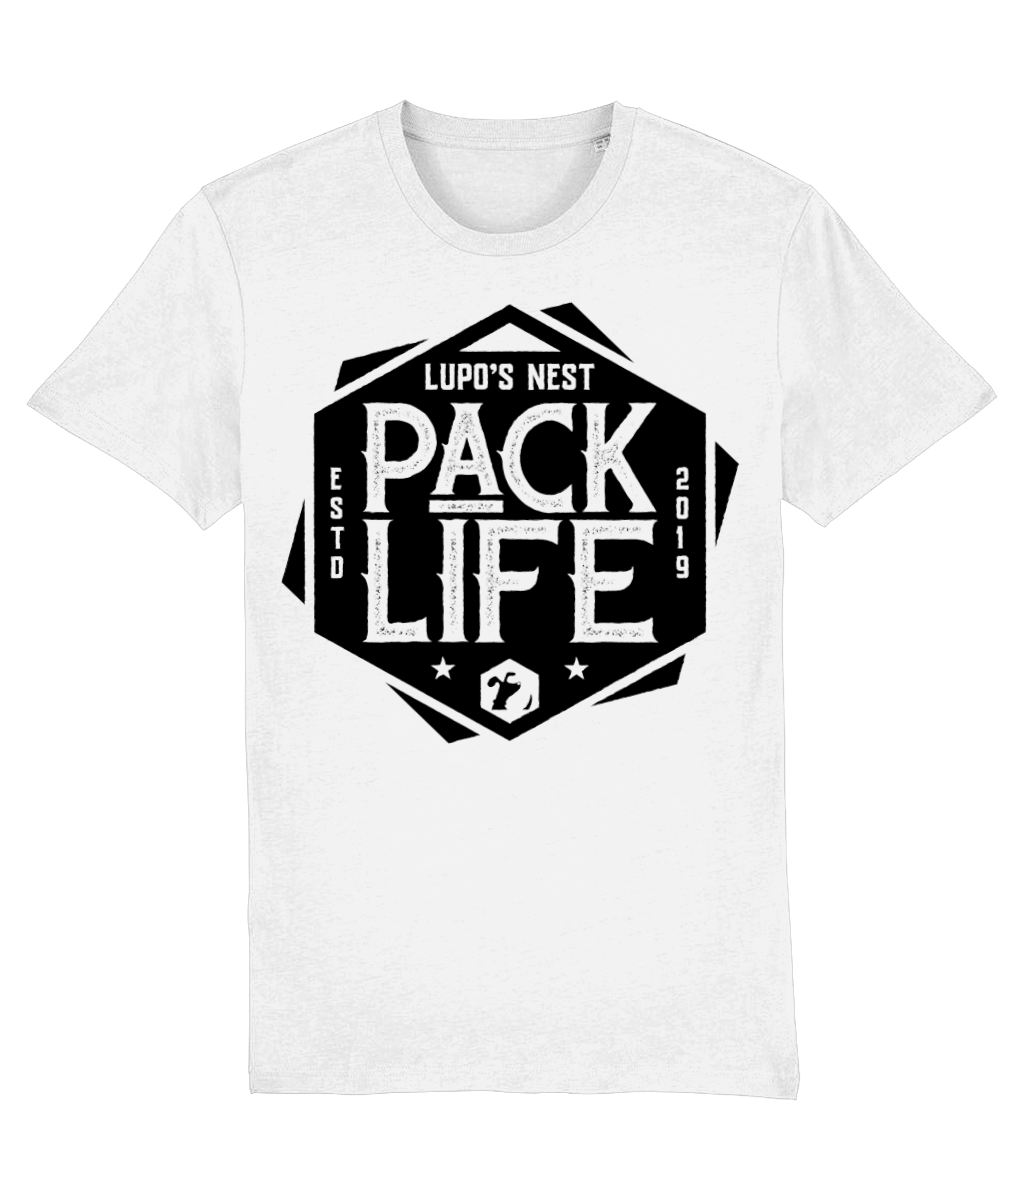 Lupo's Nest | 'Pack Life' Organic Cotton T-shirt